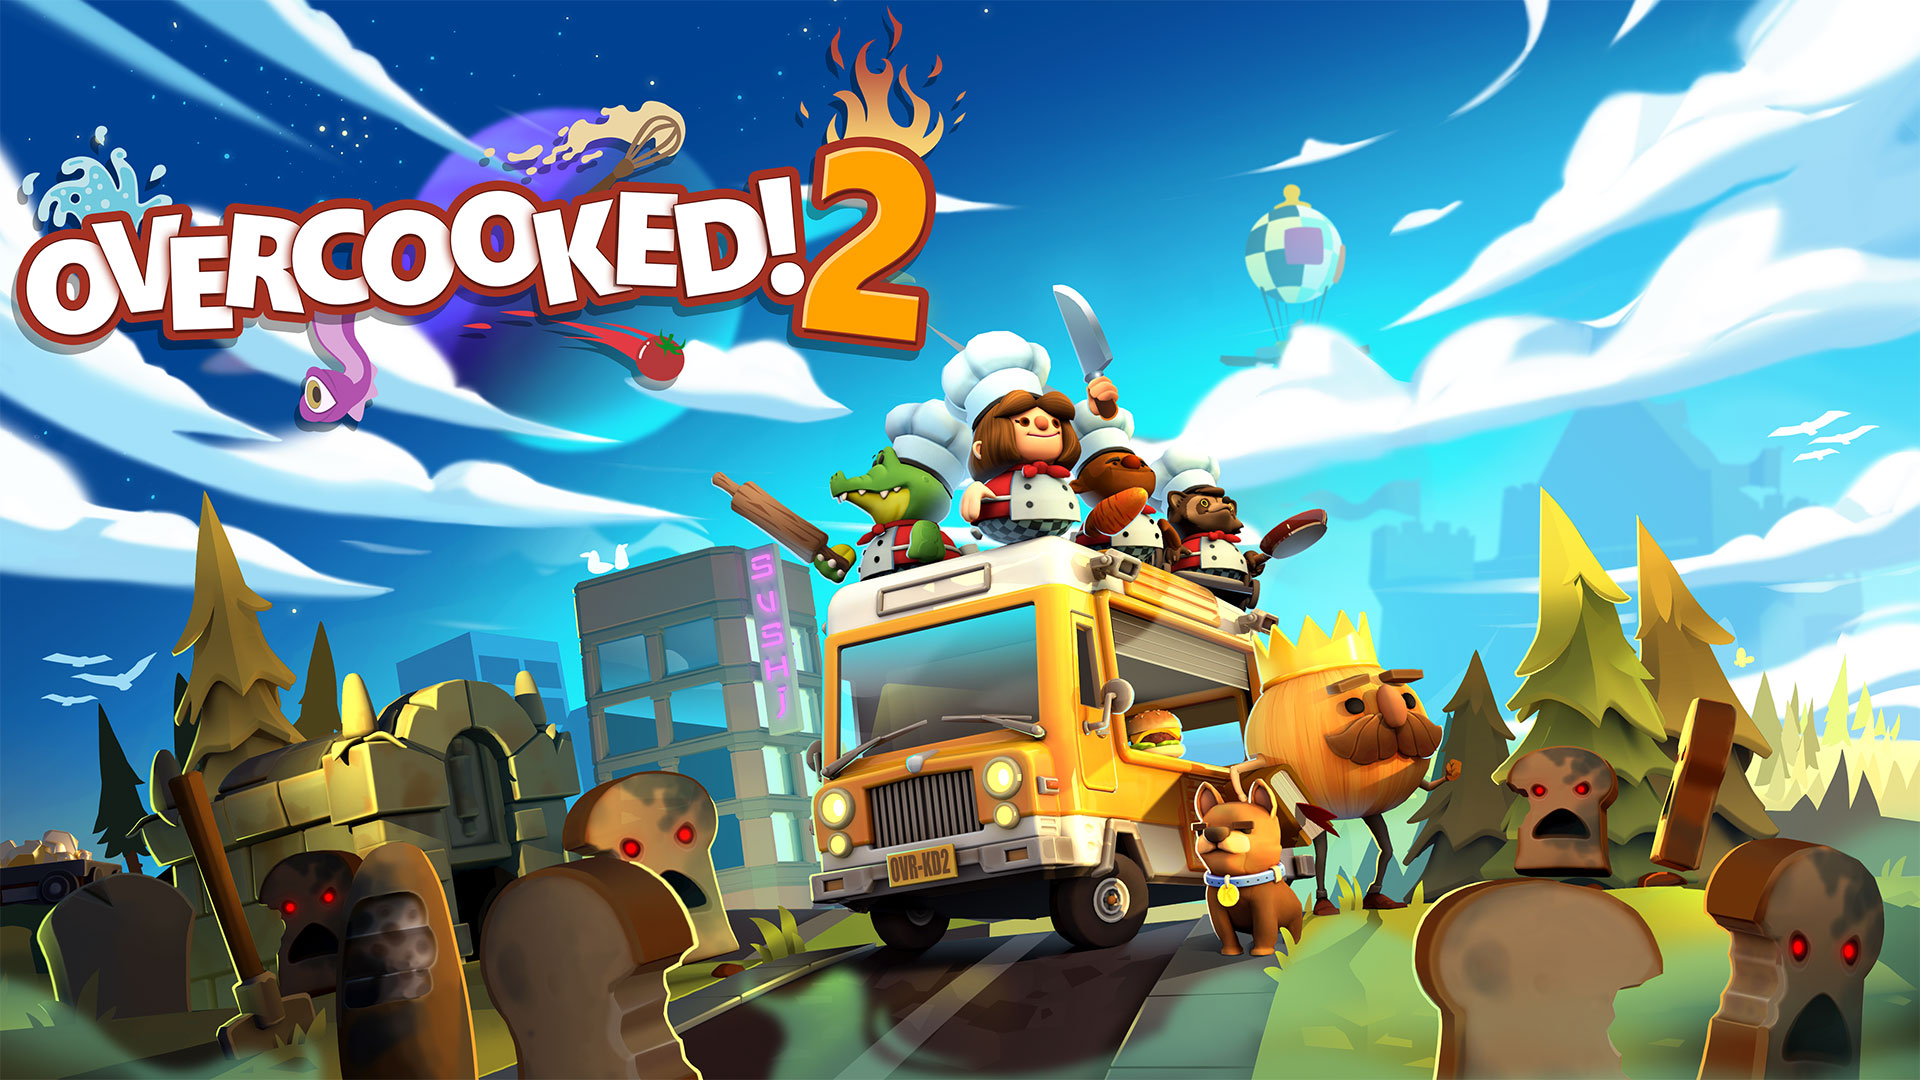 The A-Z of Overcooked! 2